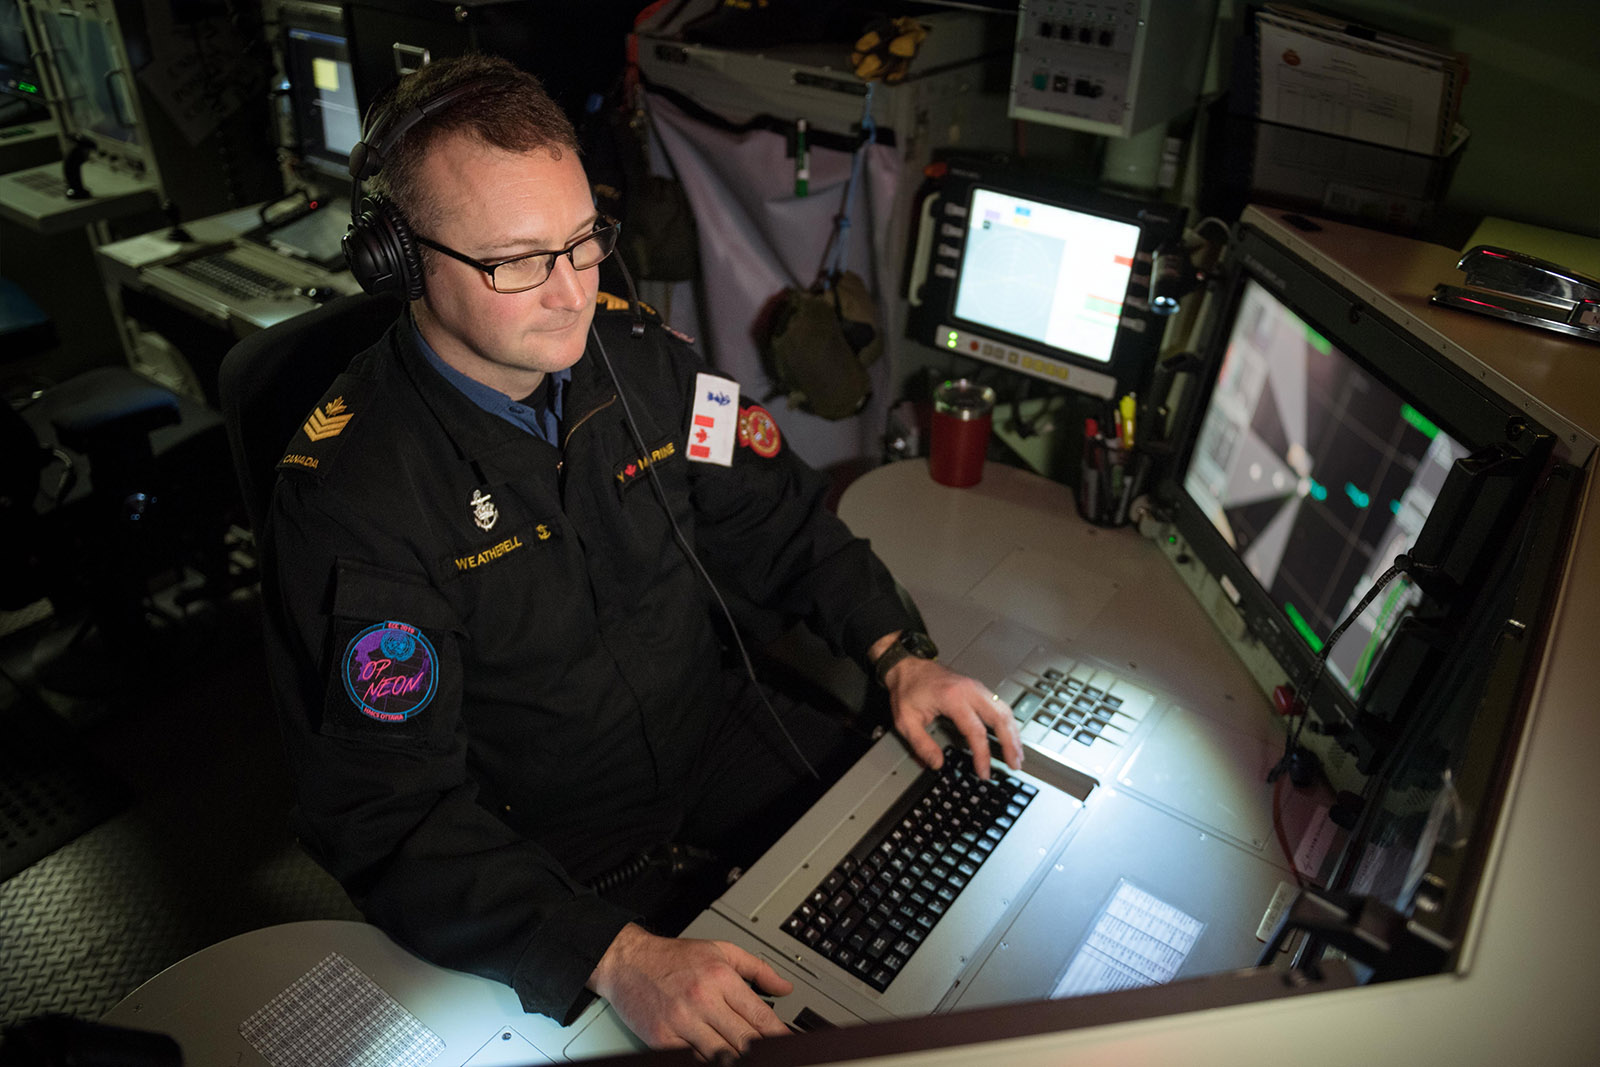 PO2 Scott Weatherell monitors the Multi-Function Workstation at the Electronic Warfare Supervisor Console onboard HMCS OTTAWA during Operation PROJECTION